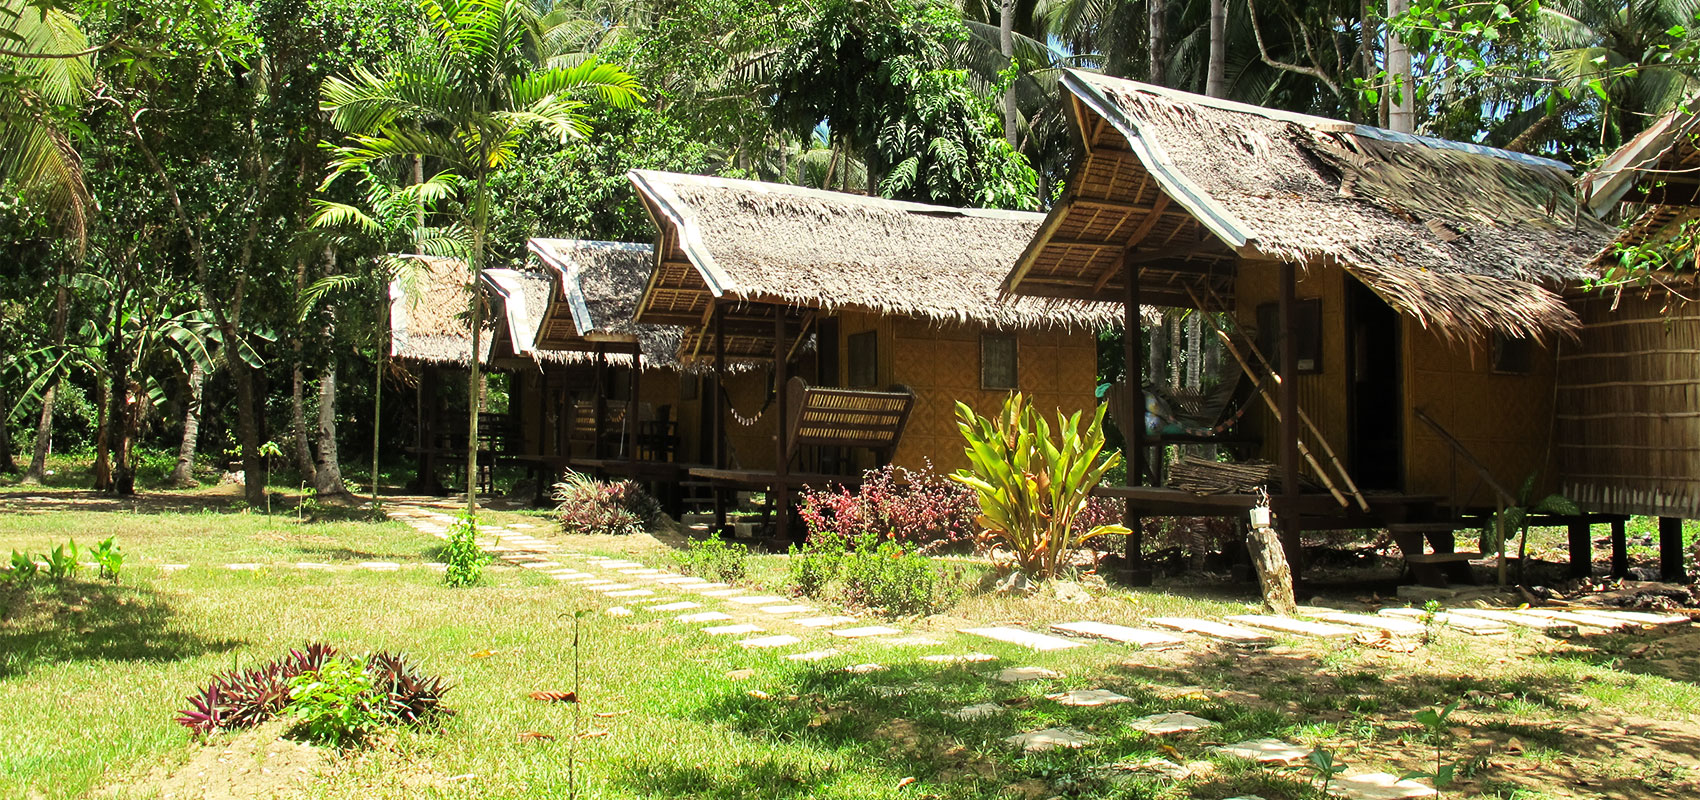 Native Huts